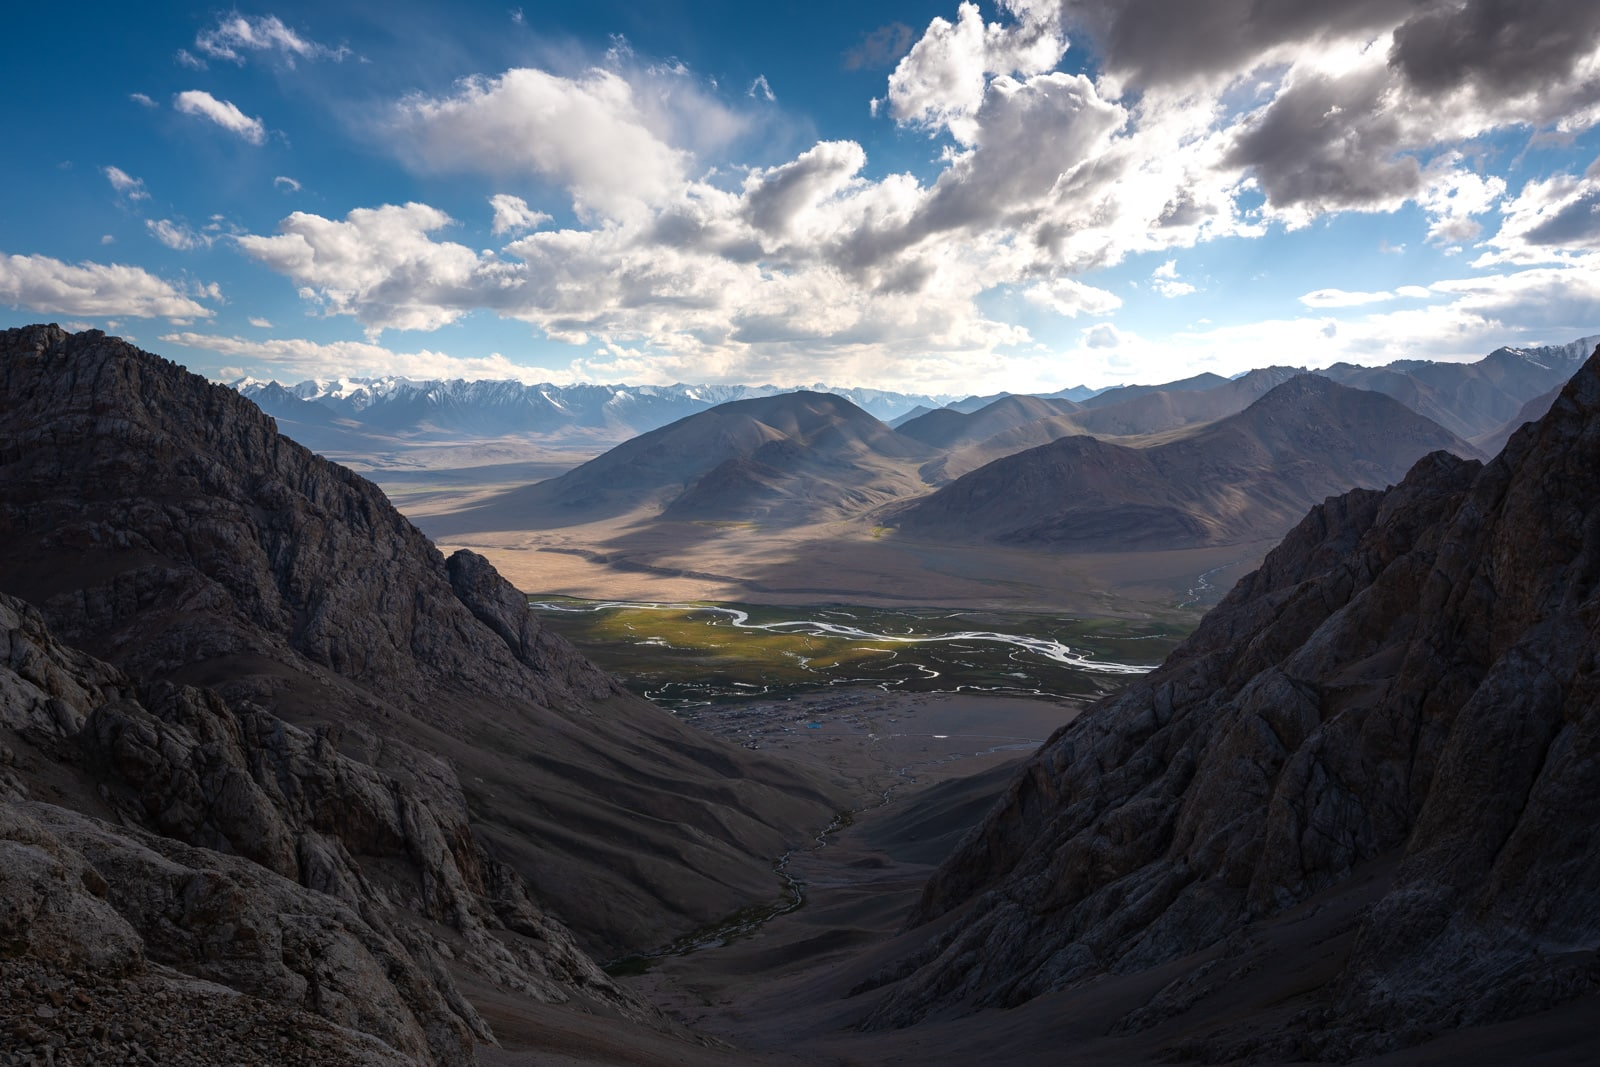 Sun rays over Shaimak Village in the Pamir mountains of Tajikistan